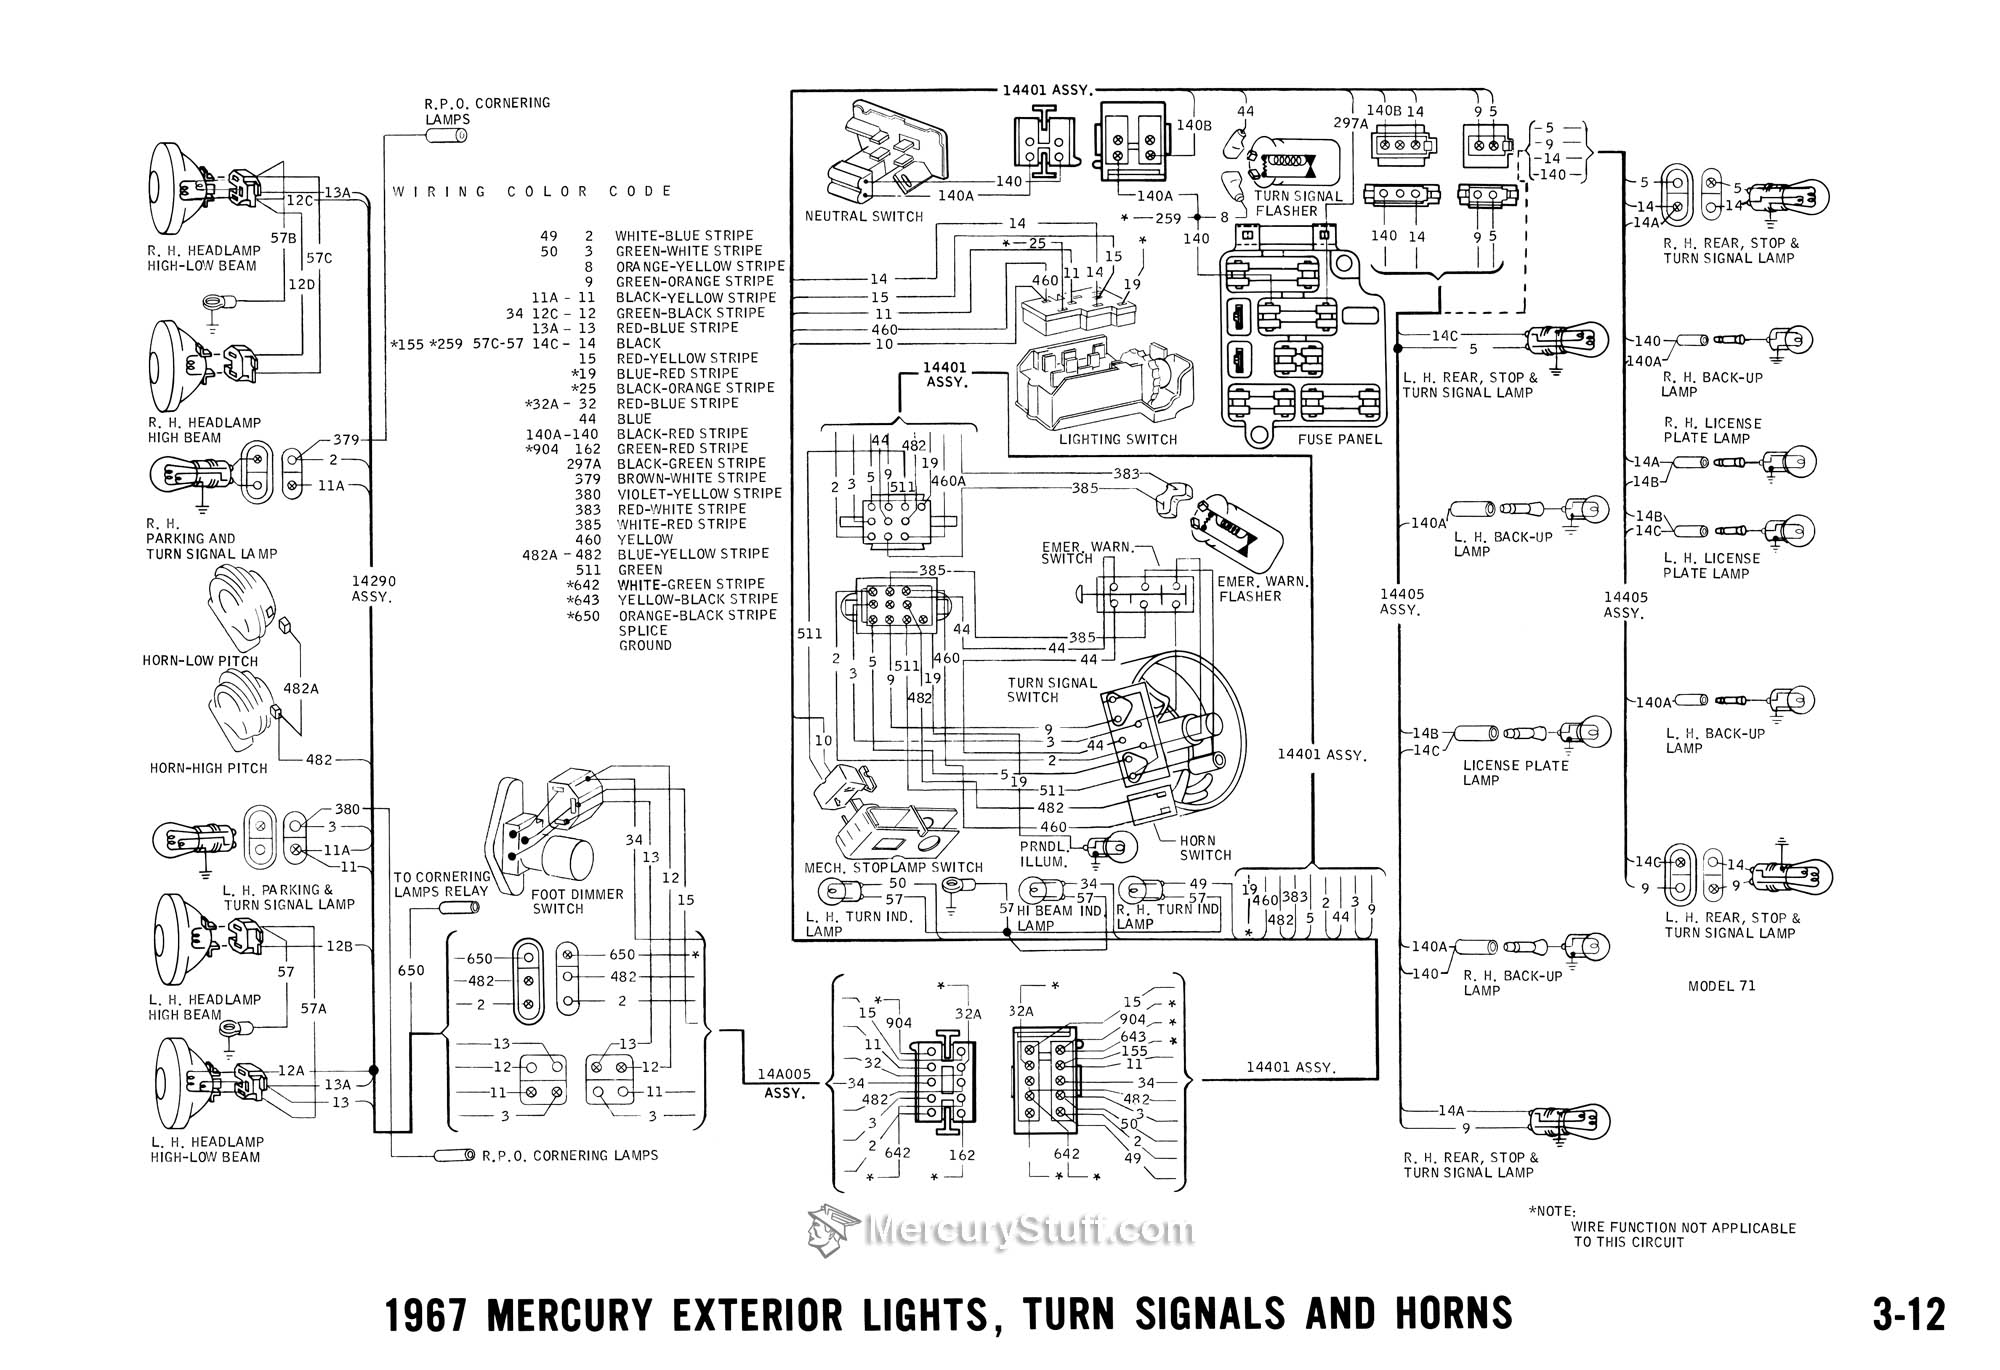 1967 mercury exterior lights turn signals horns wiring diagram 2006 mercury grand marquis the wiring diagram mercury 14 pin wiring harness diagram at eliteediting.co